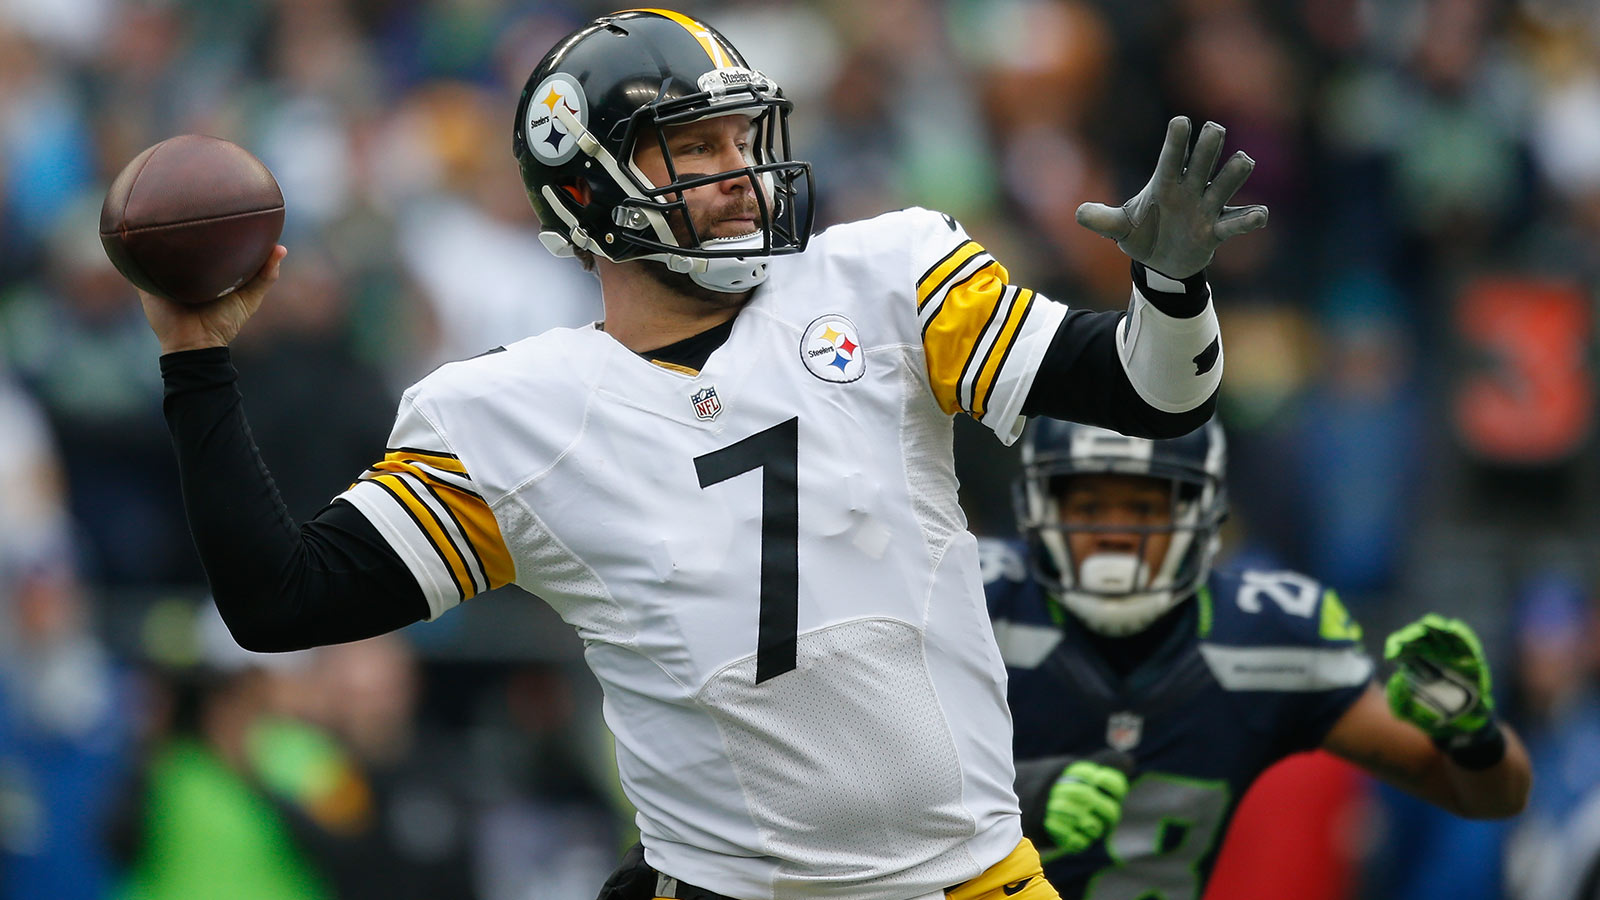 NFL Quick Hits: Roethlisberger in concussion protocol